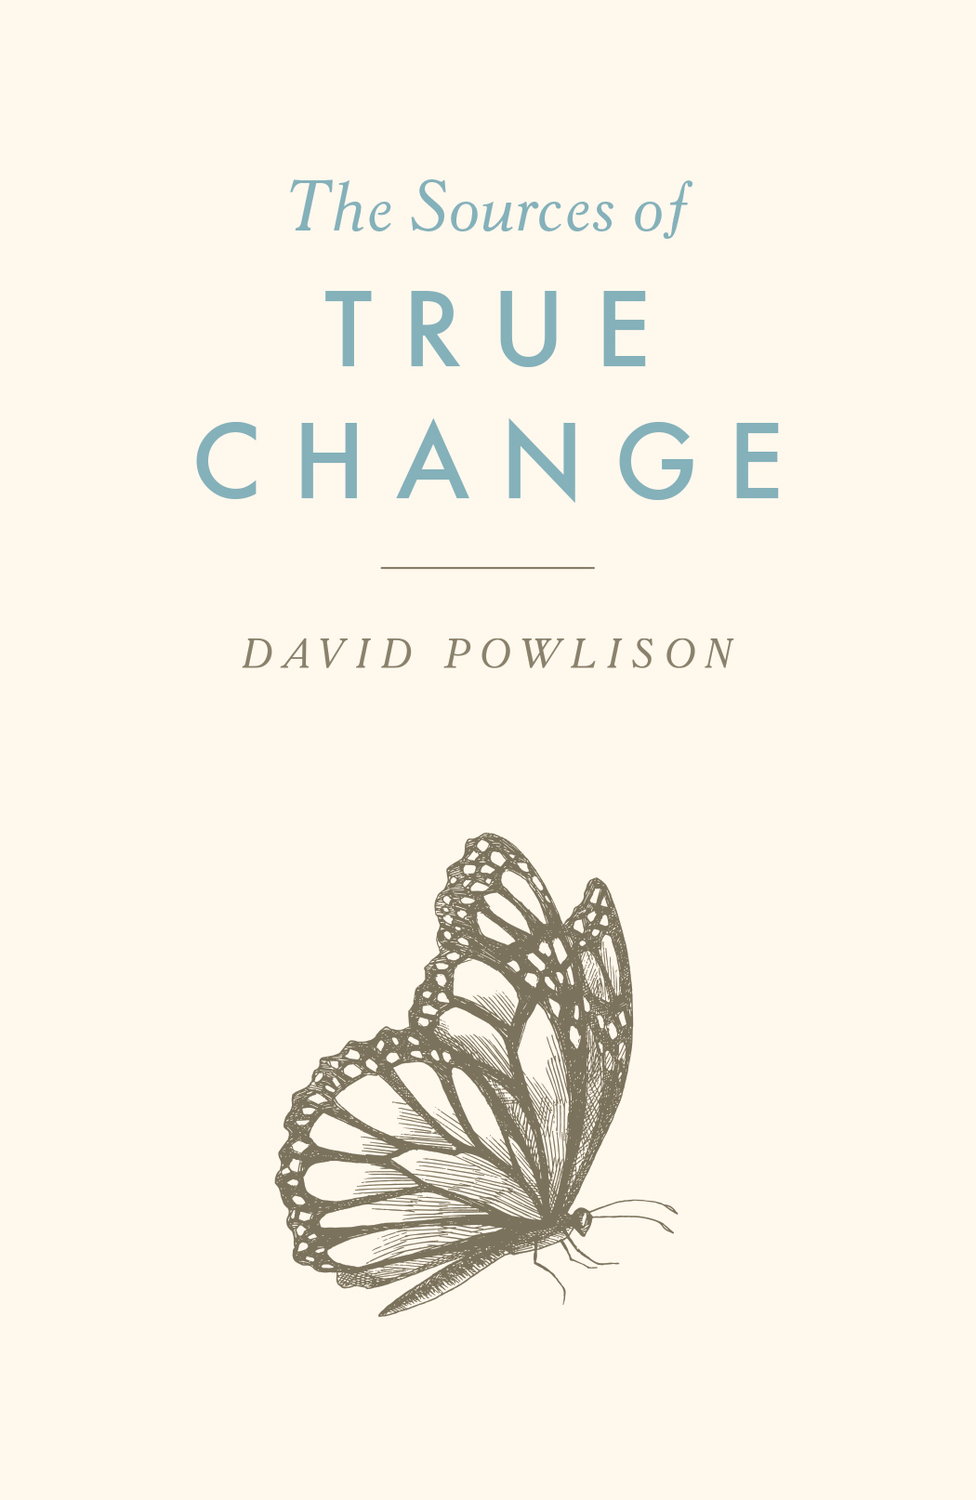 The Sources of True Change